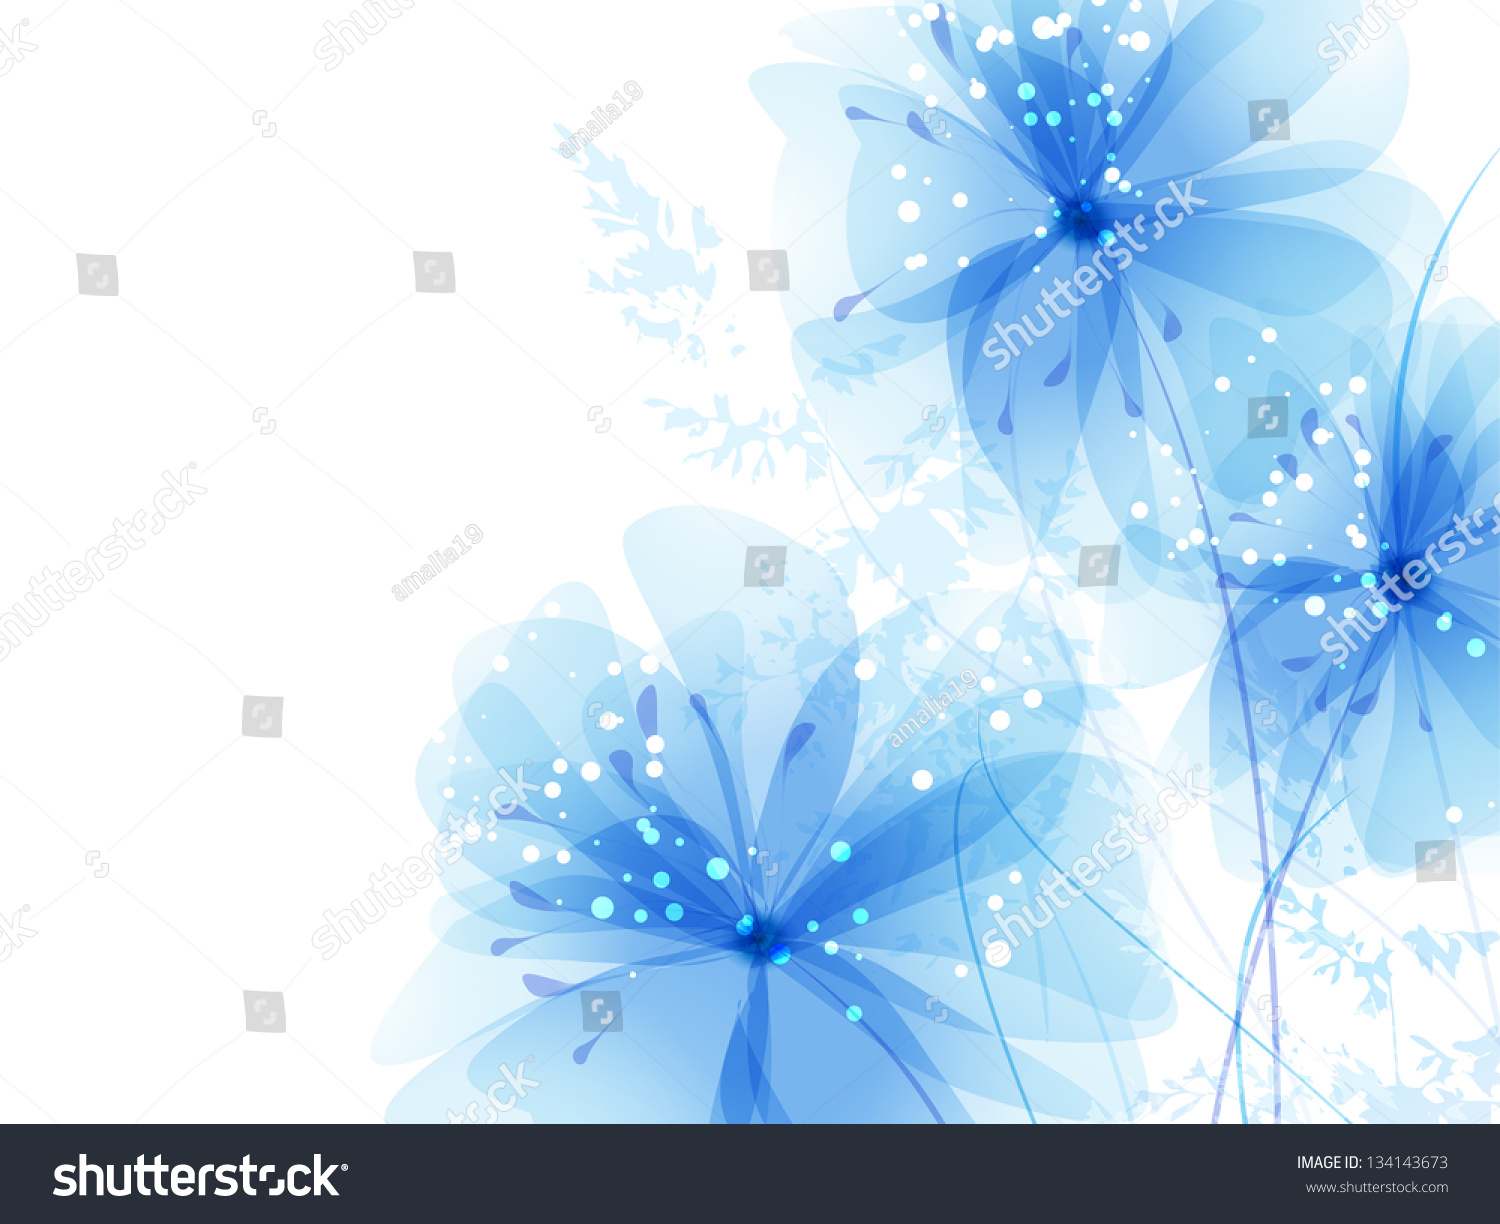 blue flower backgrounds vector - photo #14